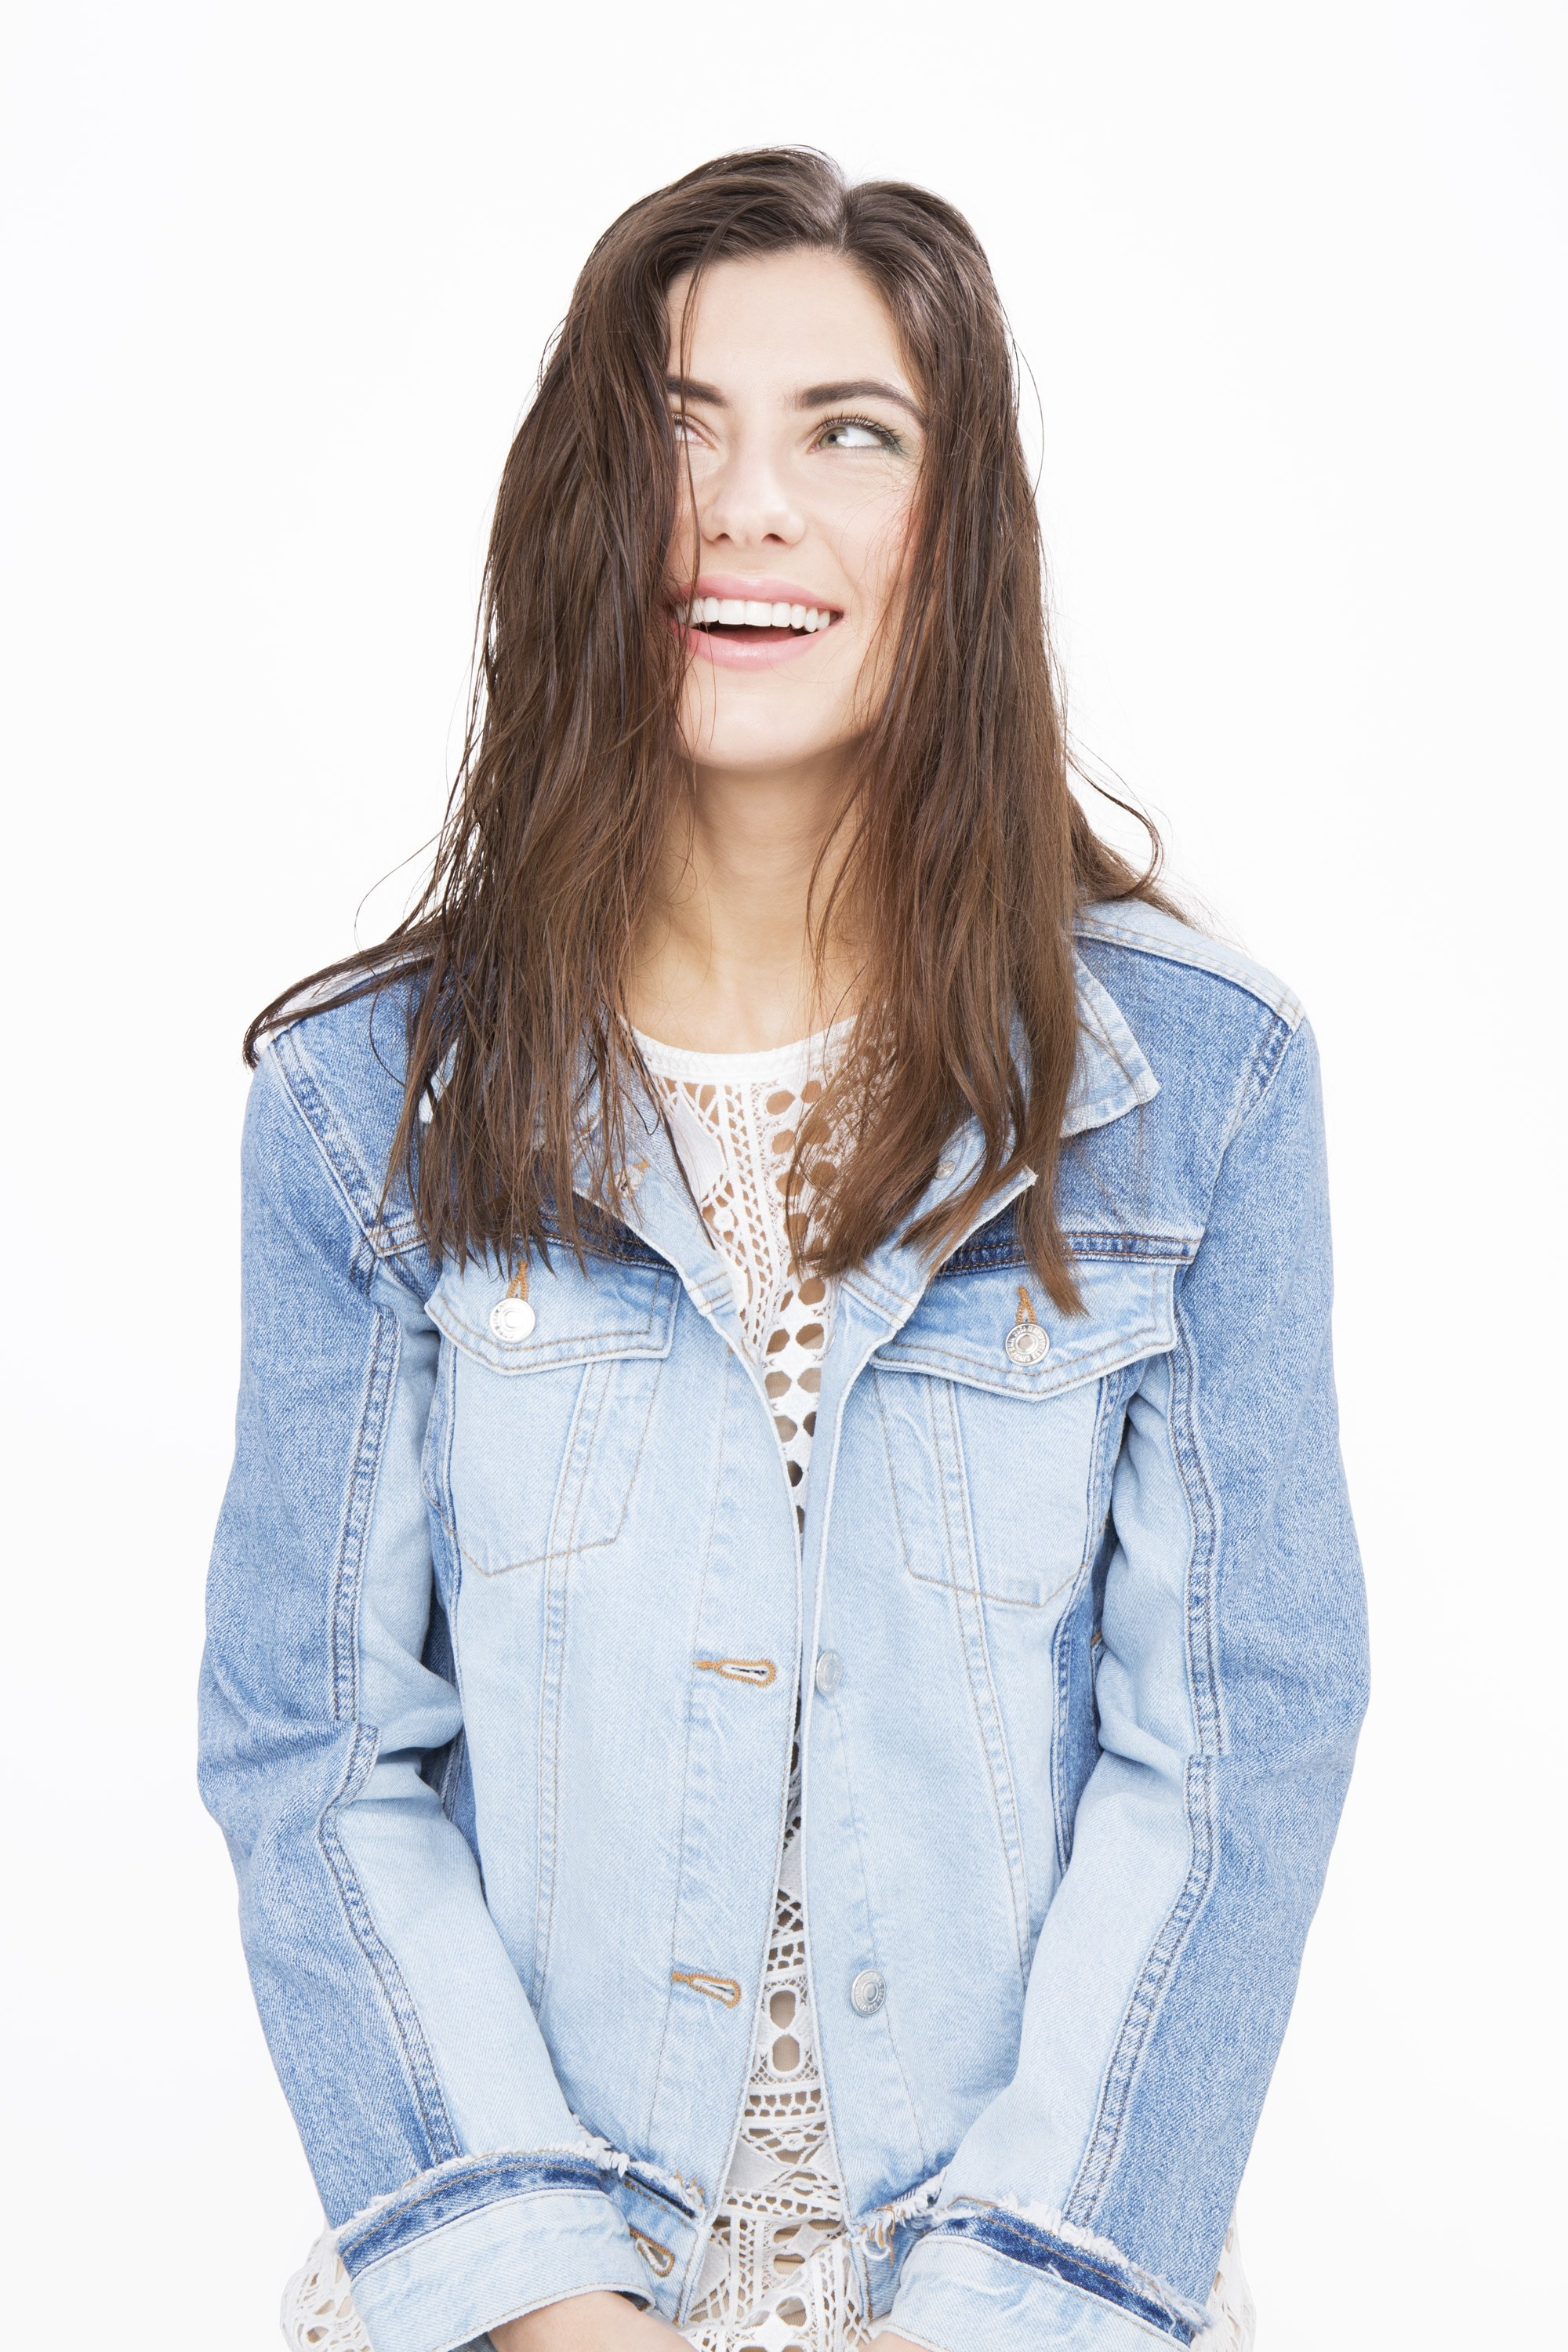 Deep conditioner: Brunette model wearing a denim jacket with damp freshly-washed hair